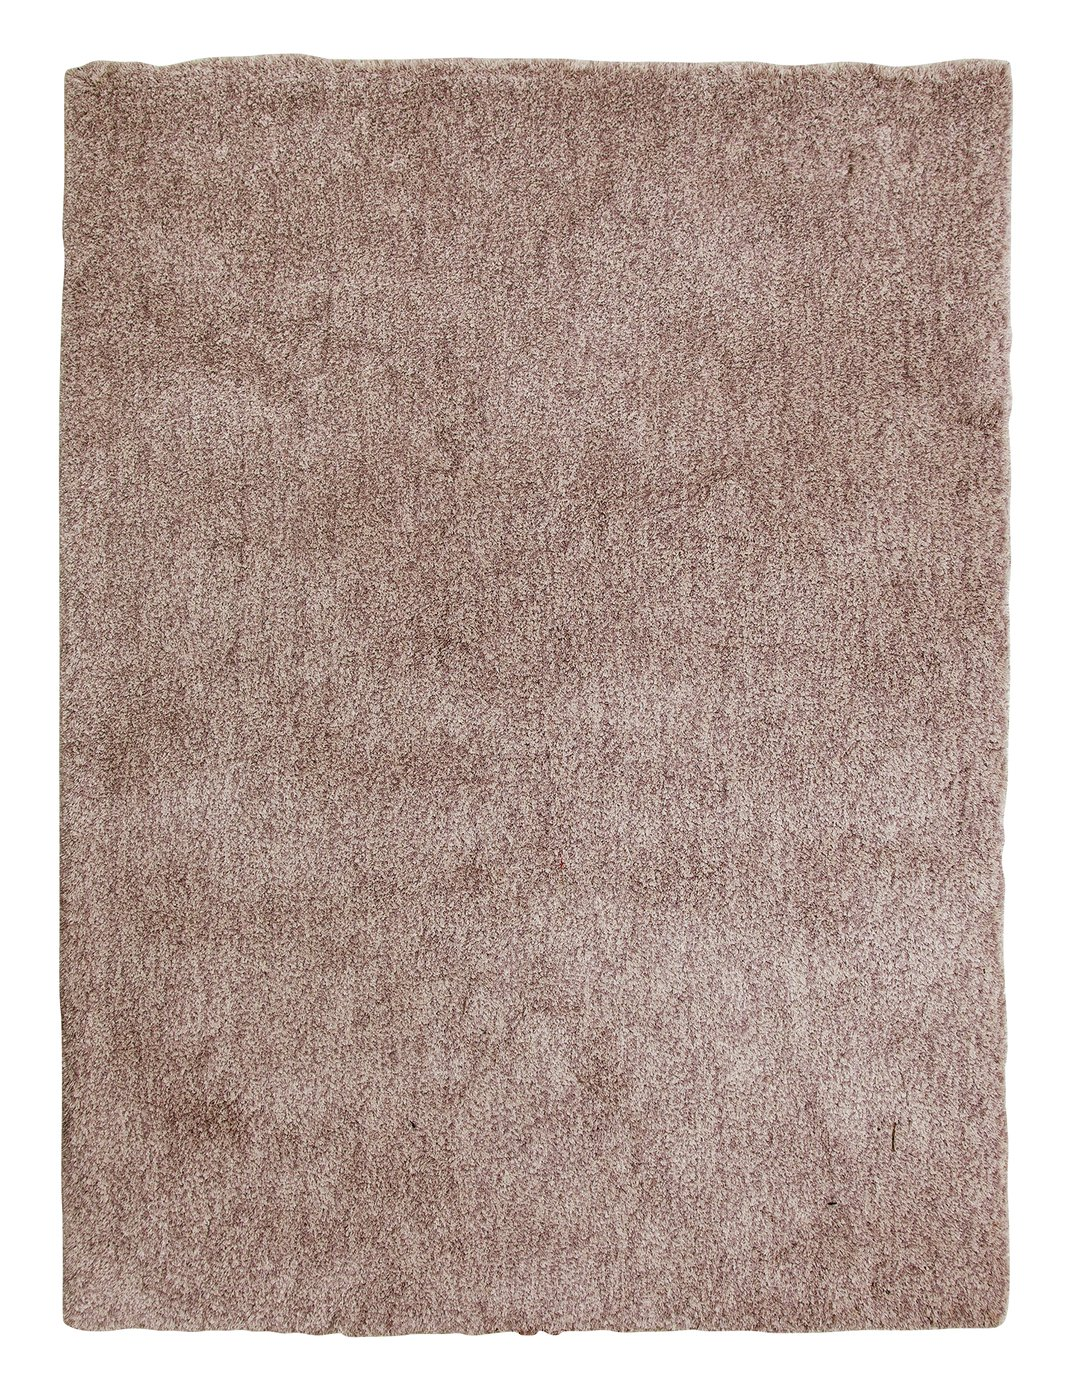 Argos Home Supersoft Multi-Tone Rug - 160x120cm - Biscuit